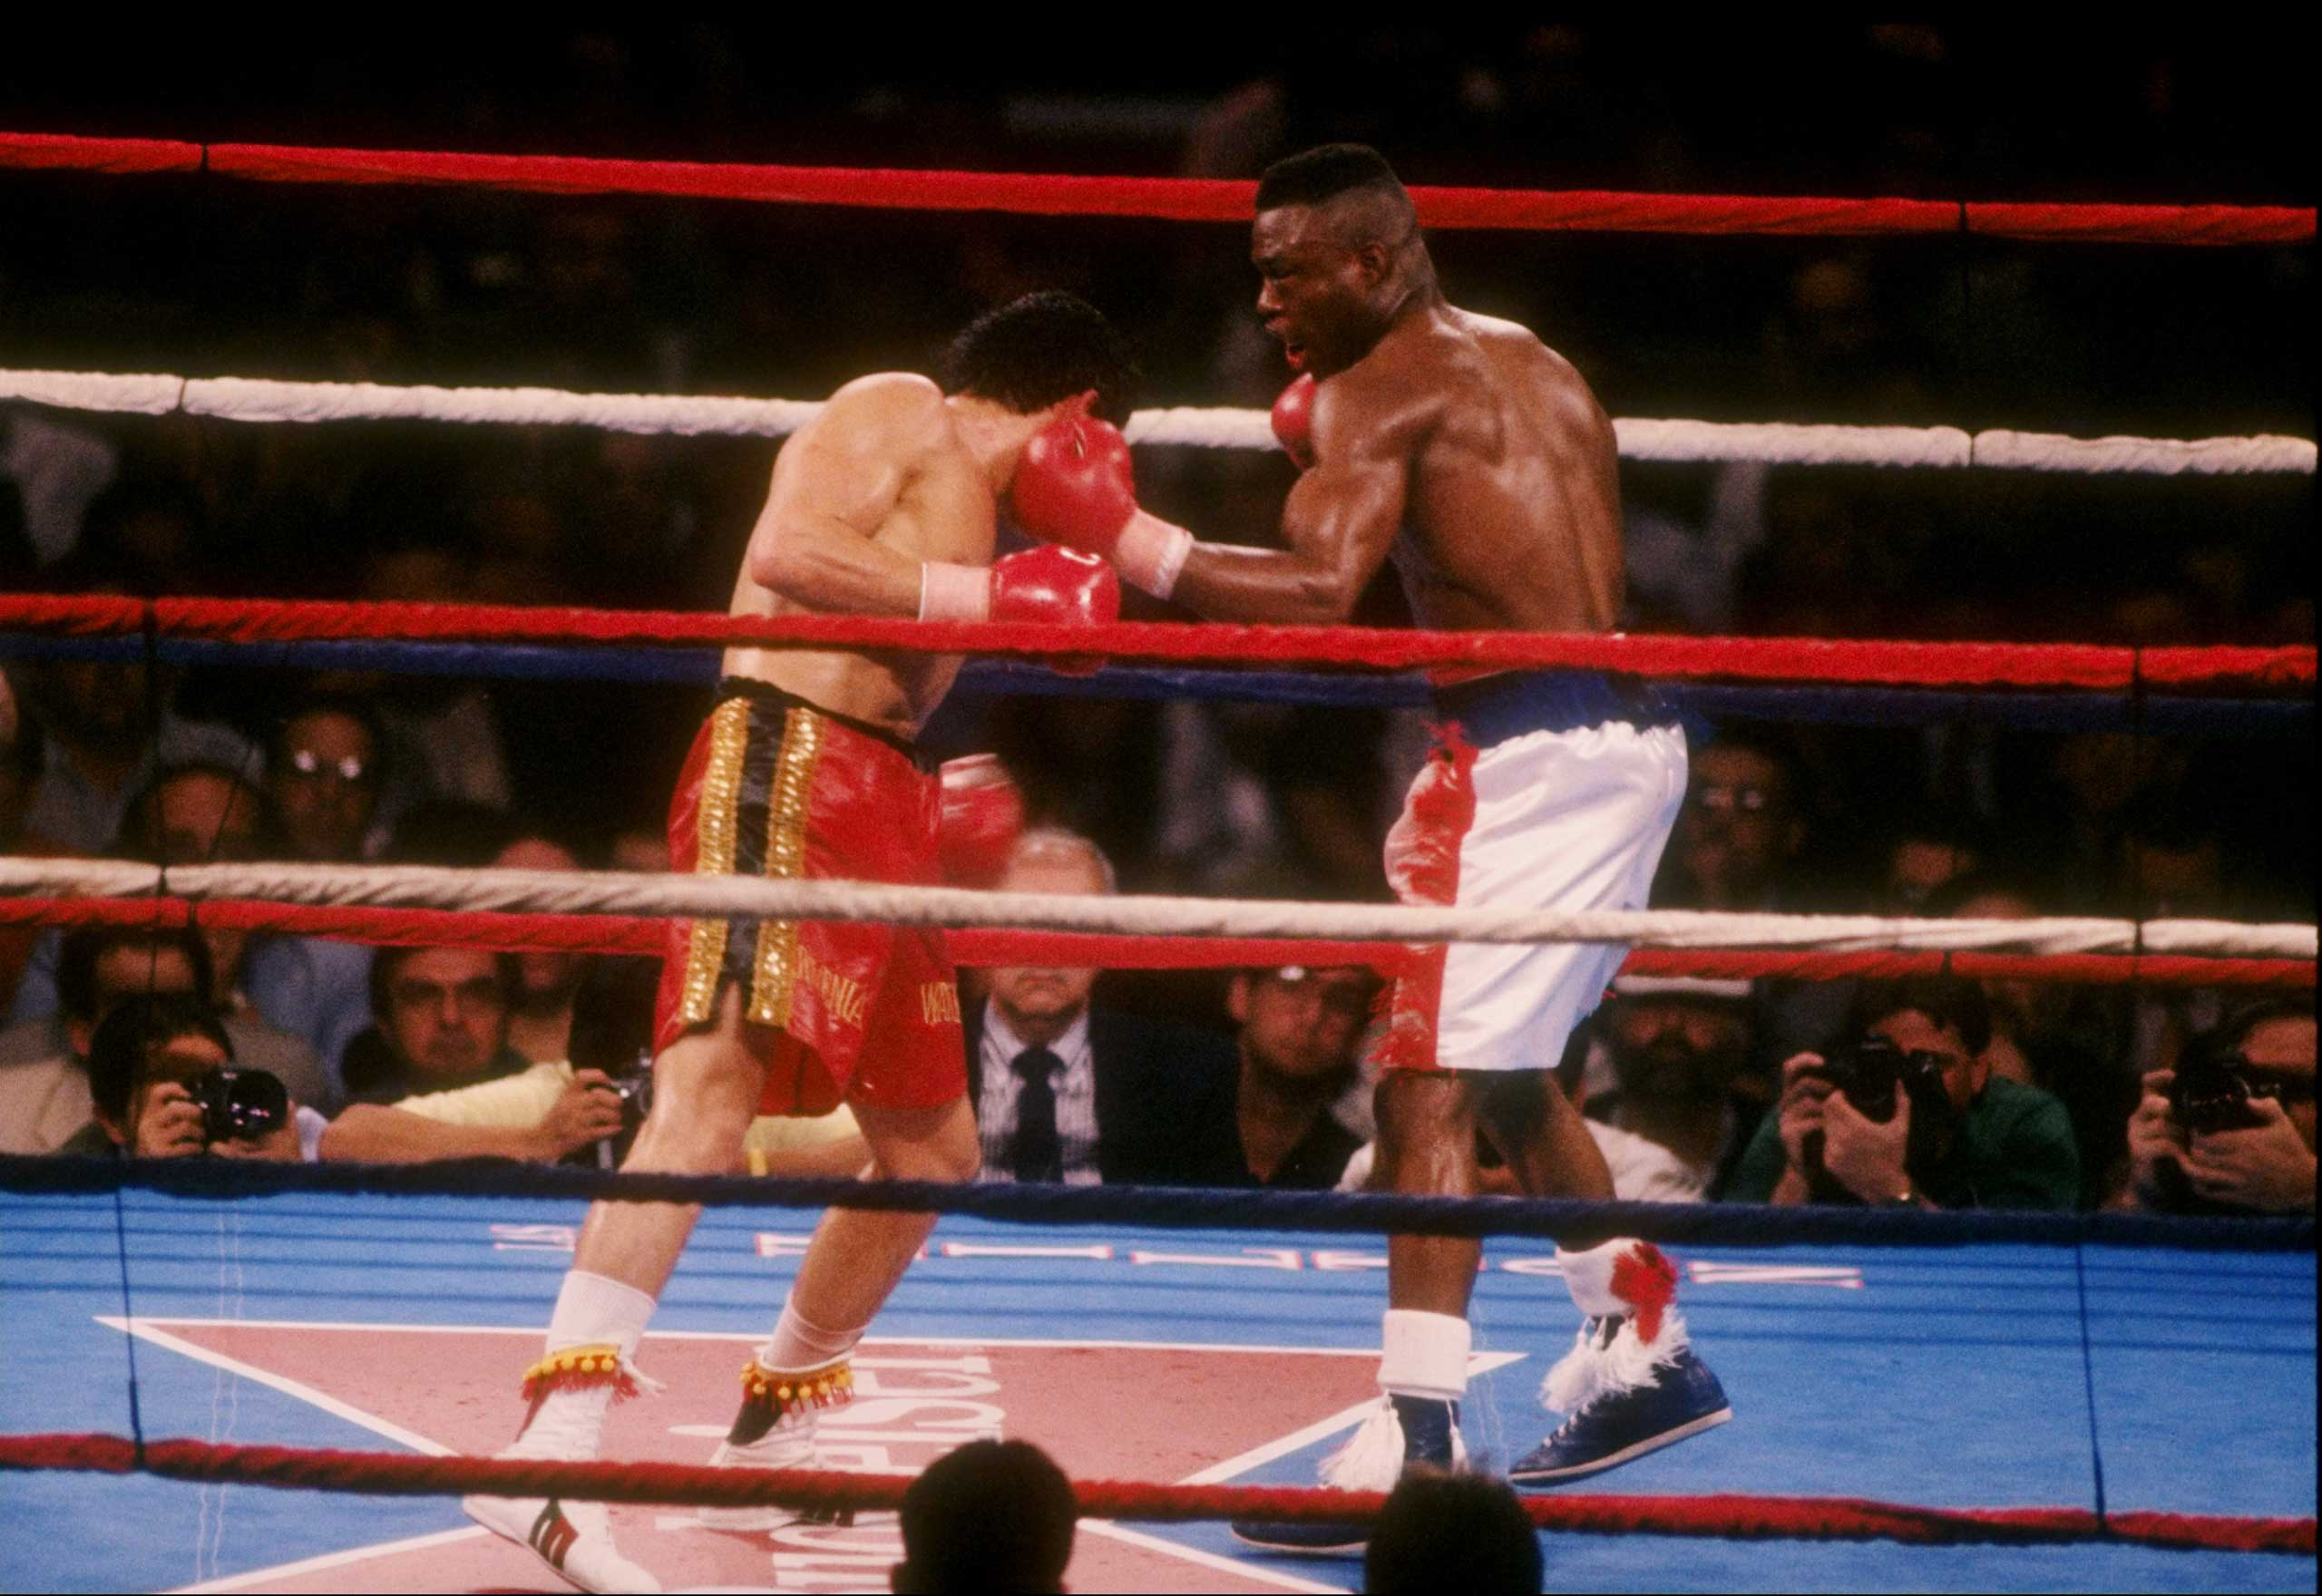 "<b>Julio Cesar Chavez vs. Meldrick Taylor, March 17, 1990</b> Endings don't get much more dramatic than this. Expectations were high for the bout nicknamed ""Thunder Meets Lightning"", referring to Chavez's punching power and Taylor's speed. And while the fight definitely delivered, it enters folklore for the nature of the sudden, dramatic, and controversial ending that continues to be debated to this day. Taylor steadily built a commanding lead on points thanks to easily evading his opponent and outpunching him by a margin of 5-1. But when Chavez did manage to connect, his punches did considerable damage as a result of being the heavier man.                                                                      Going into the 12th, Taylor was ahead on all three scorecards (and by a big margin on two of them) but for some reason, Taylor's trainer Lou Duva told his man that he needed to win the final round. Bad move: Taylor was so tired that he fell to the canvas just by failing to land a wild left hand. The final minute was all Chavez and he dropped Taylor with seconds remaining. Taylor got to his feet and was asked by referee Richard Steel if he was able to continue. By not answering (though some say Taylor gave a slight nod), Steele concluded he was unfit to carry on and stopped the fight, scoring a TKO victory for Chavez with only two seconds to go. No wonder his 2009 autobiography was called Two Seconds From Glory."